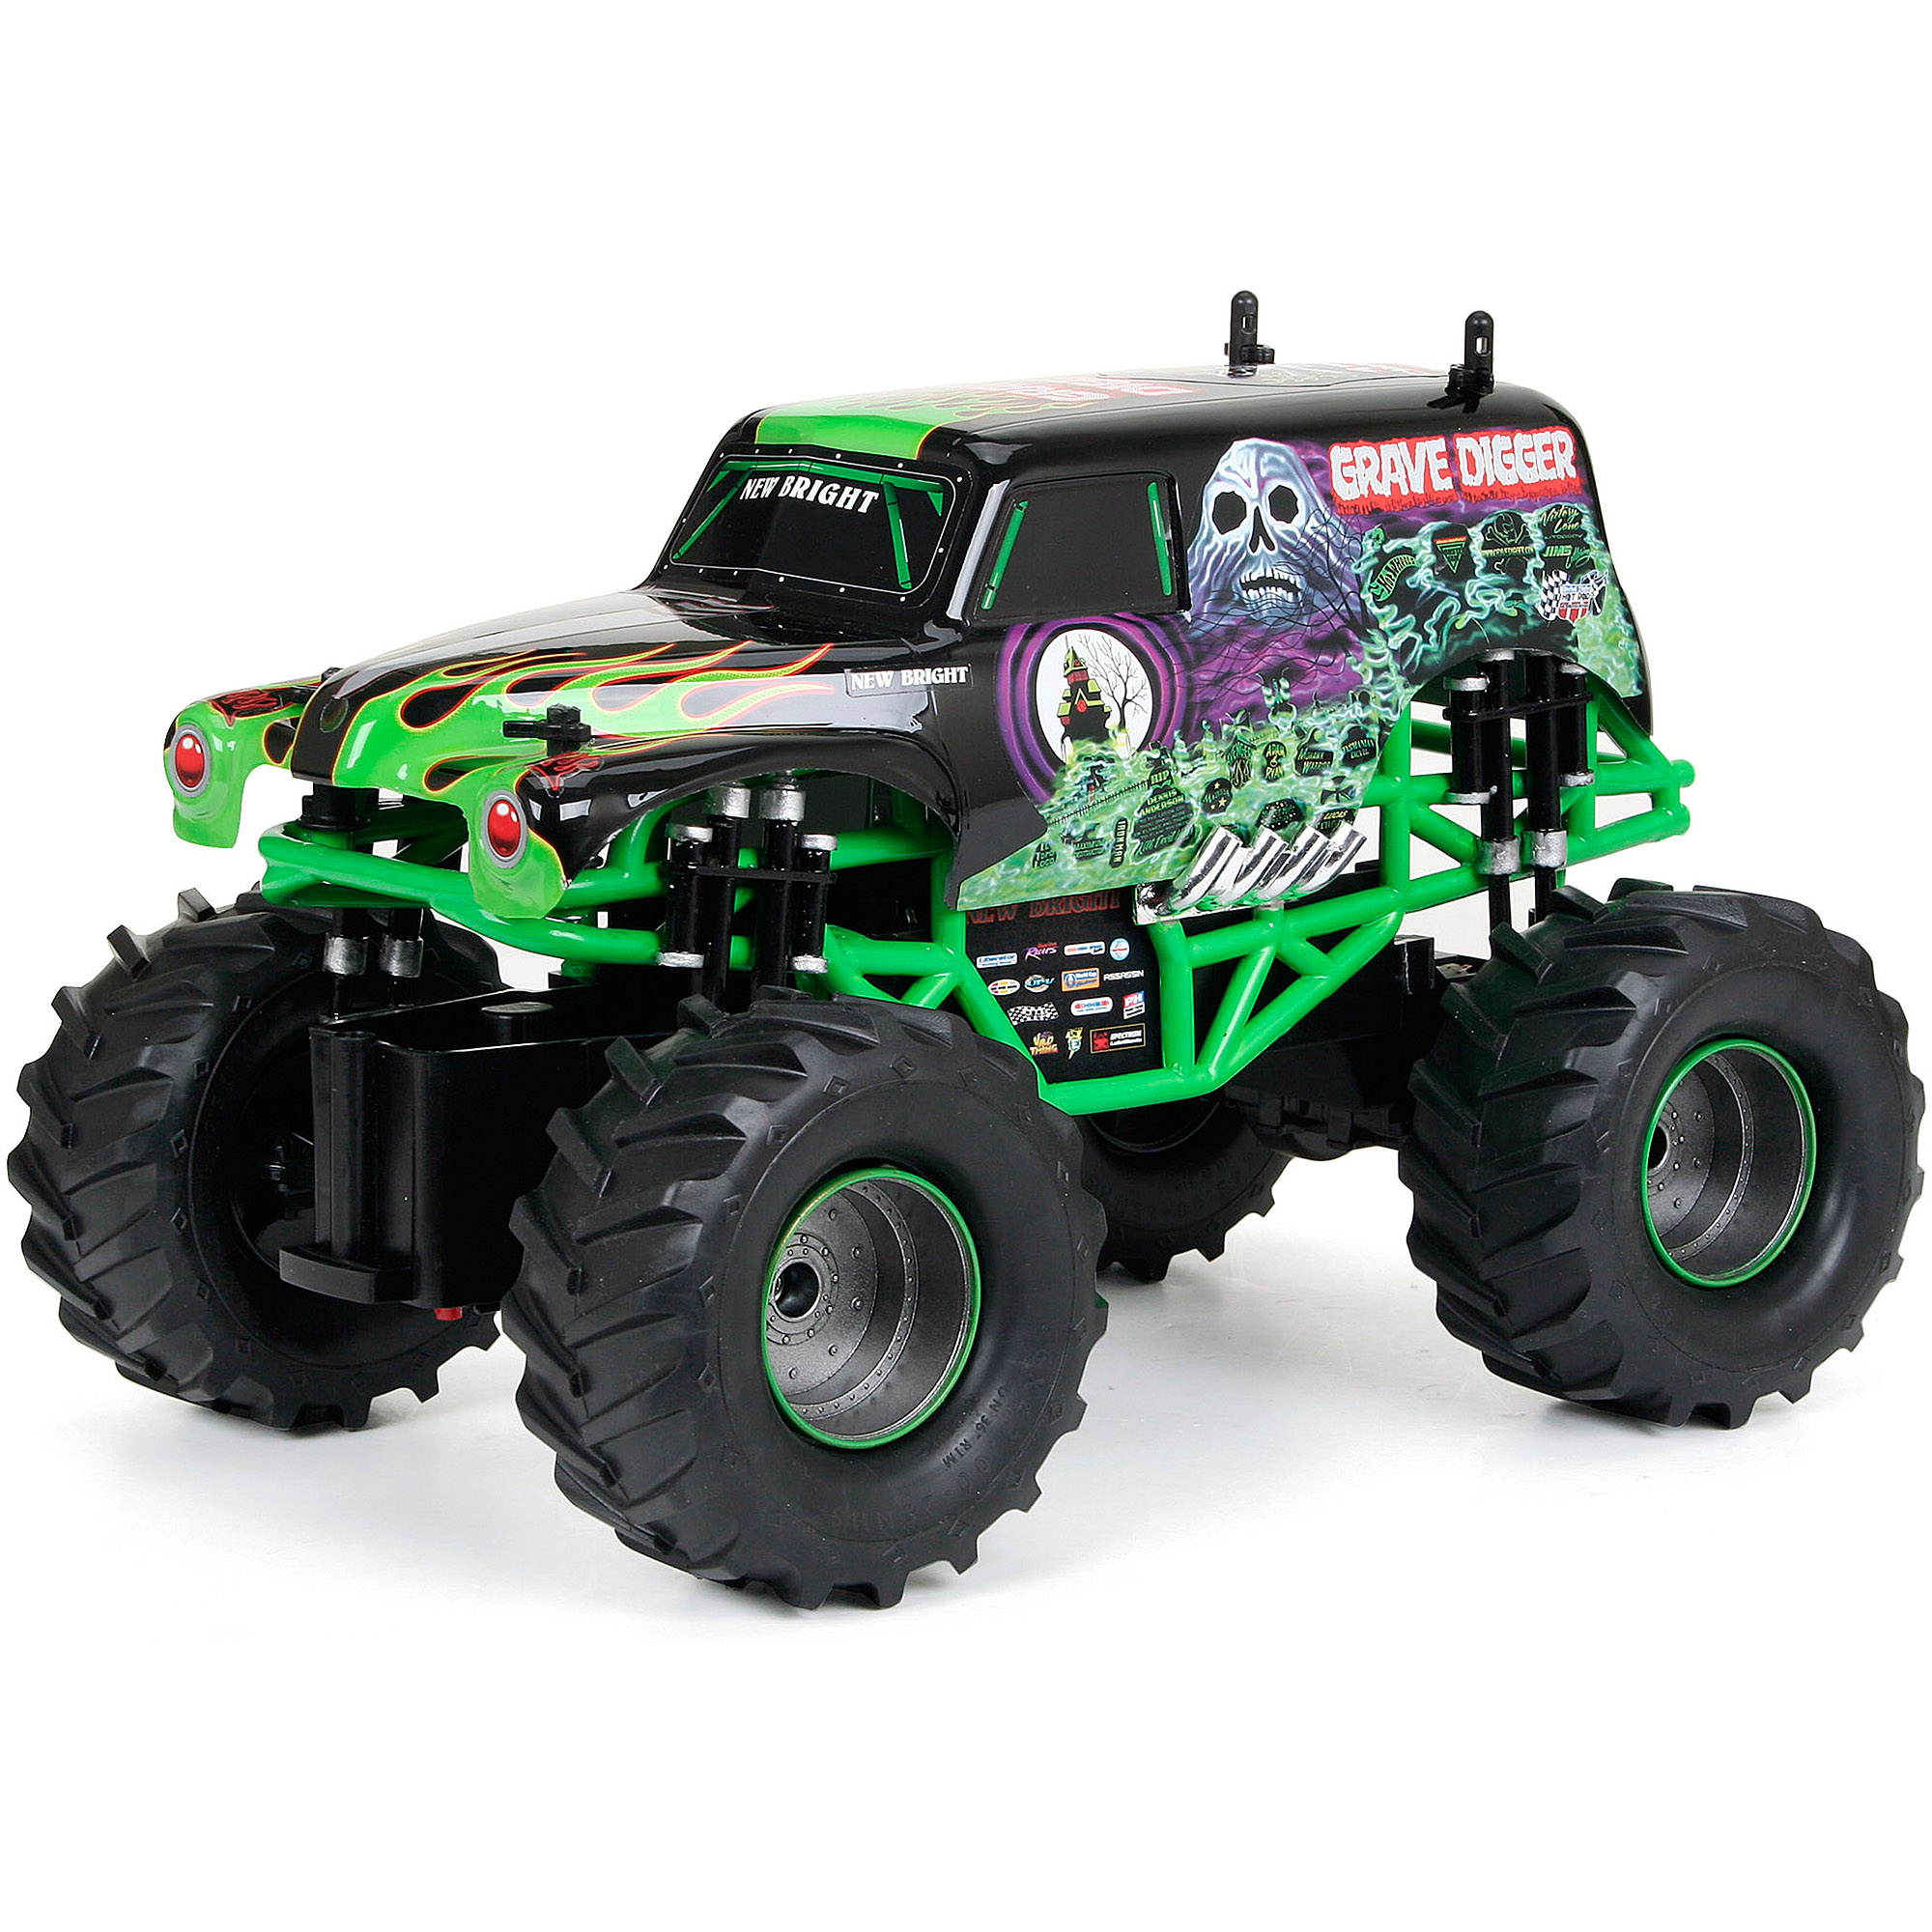 1:15 R/C Full-Function Monster Jam Grave Digger